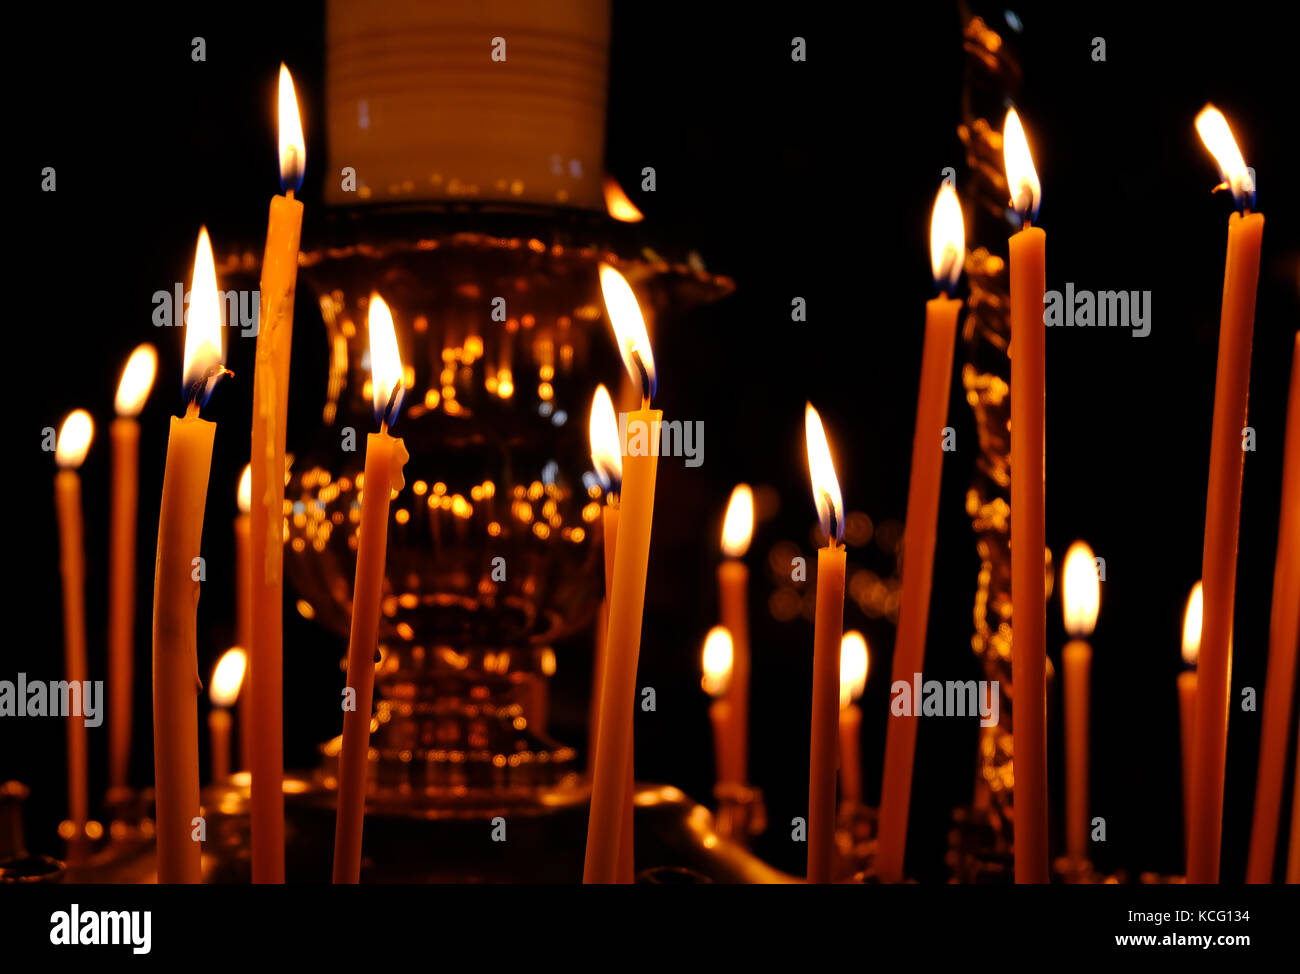 Burning Wax Candles In Christian Church As A Symbol Of Faith In